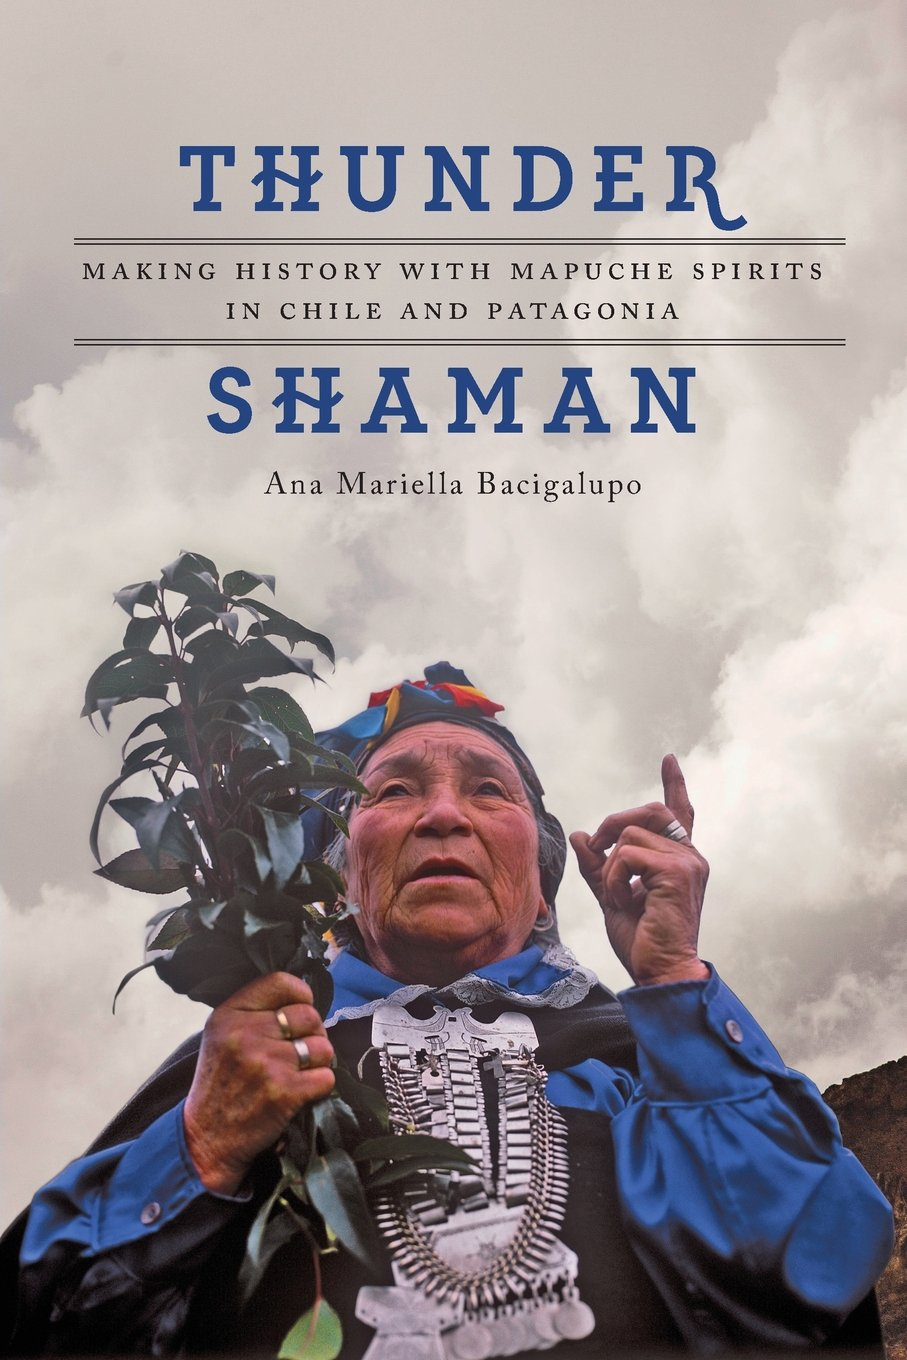 Download Thunder Shaman: Making History with Mapuche Spirits in Chile and Patagonia pdf